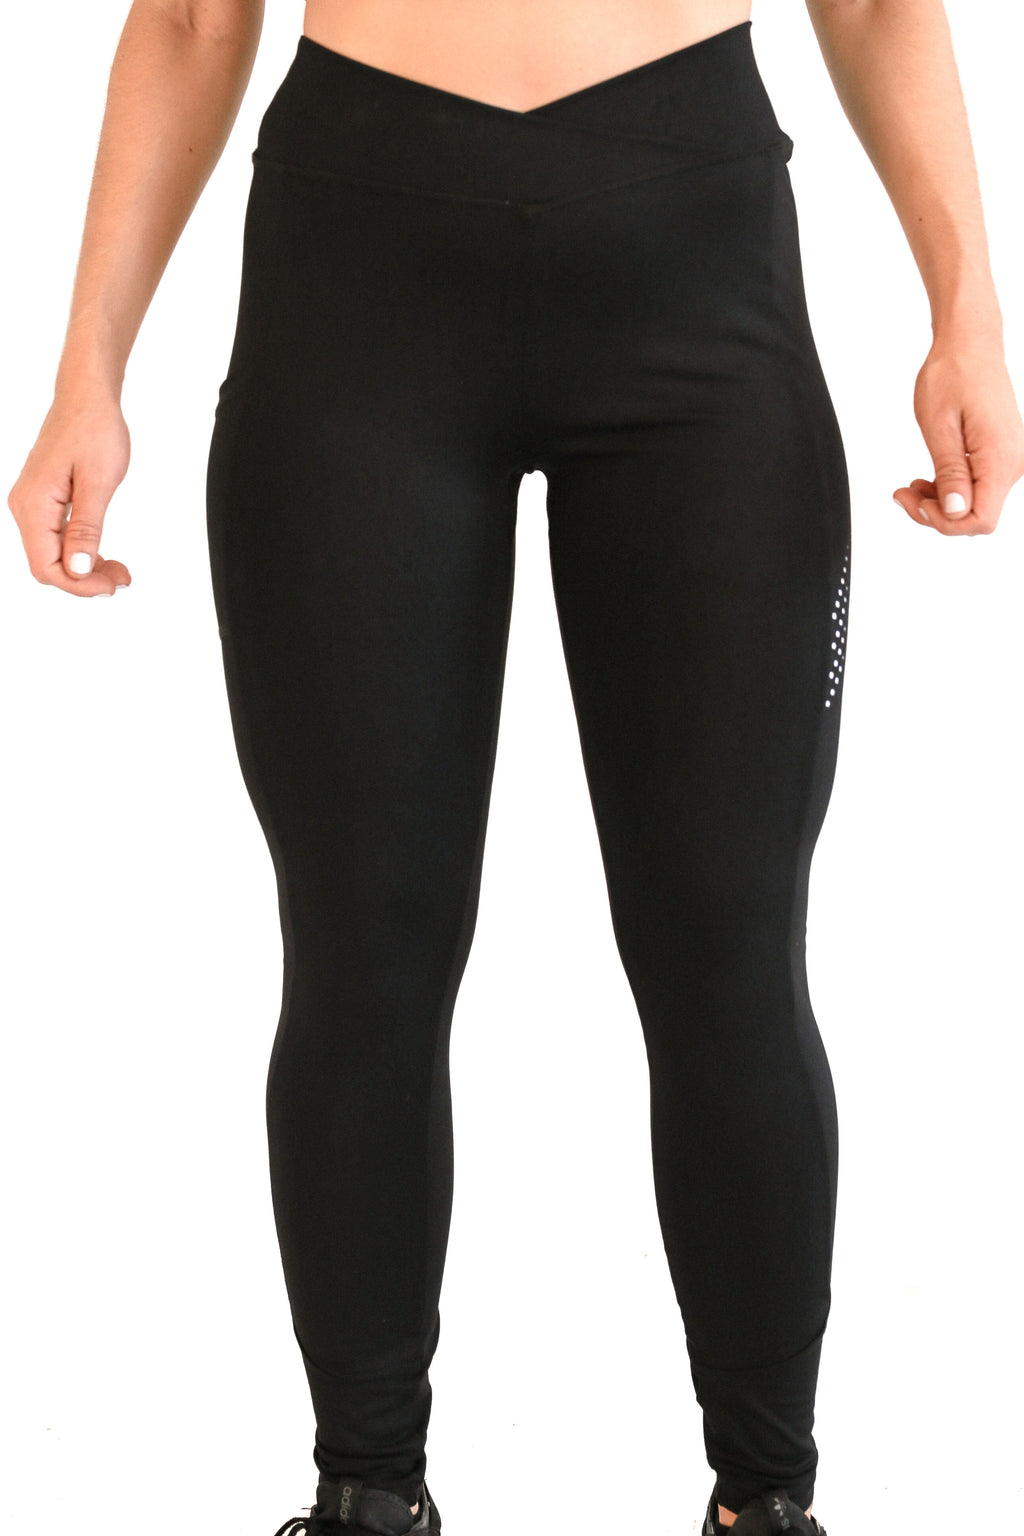 Veyl Leggings